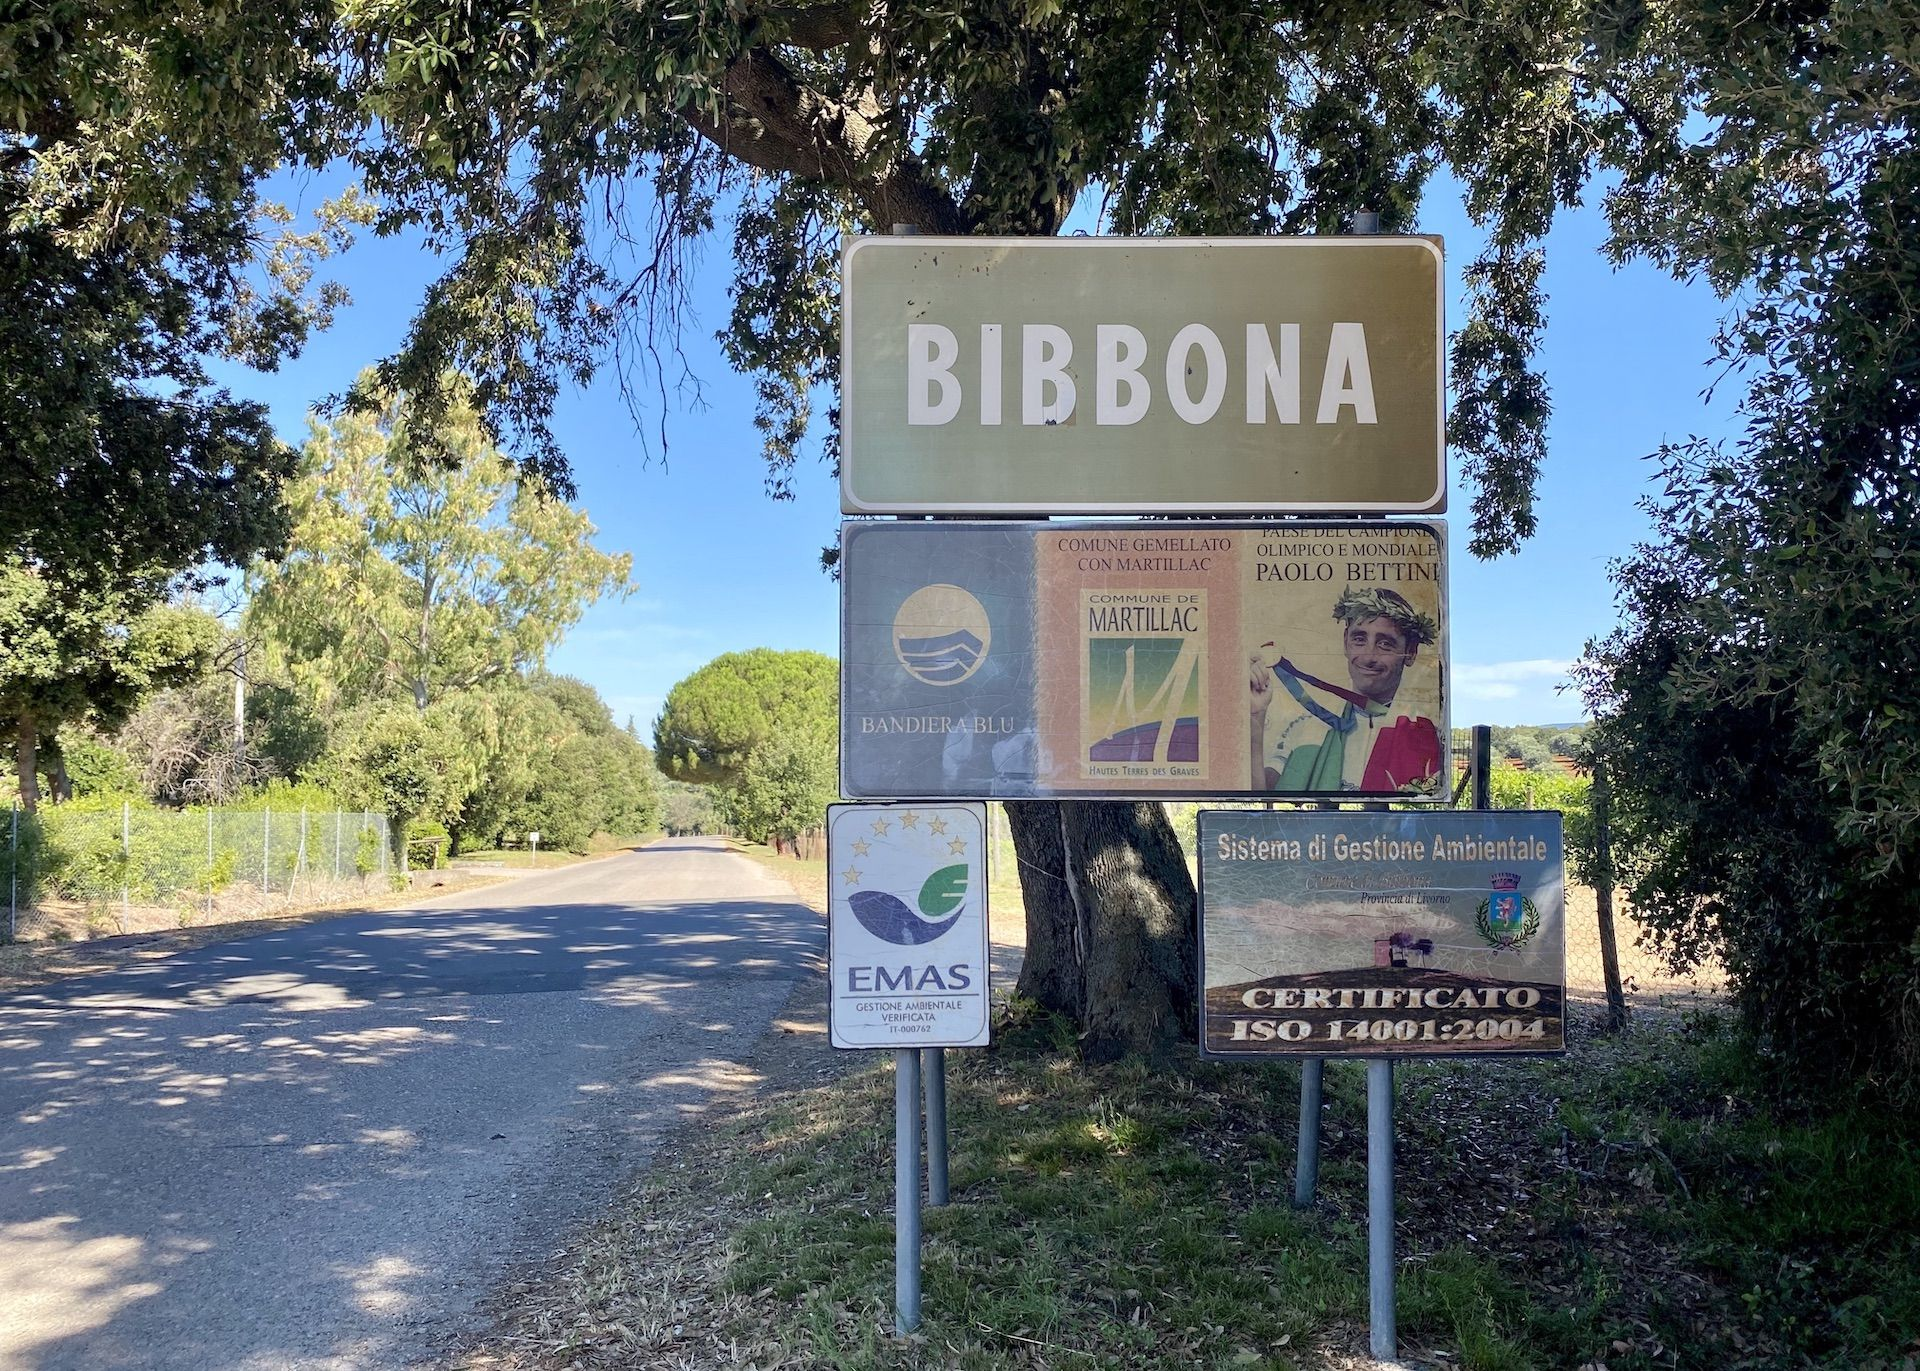 Bibbona town sign with Paolo Bettini